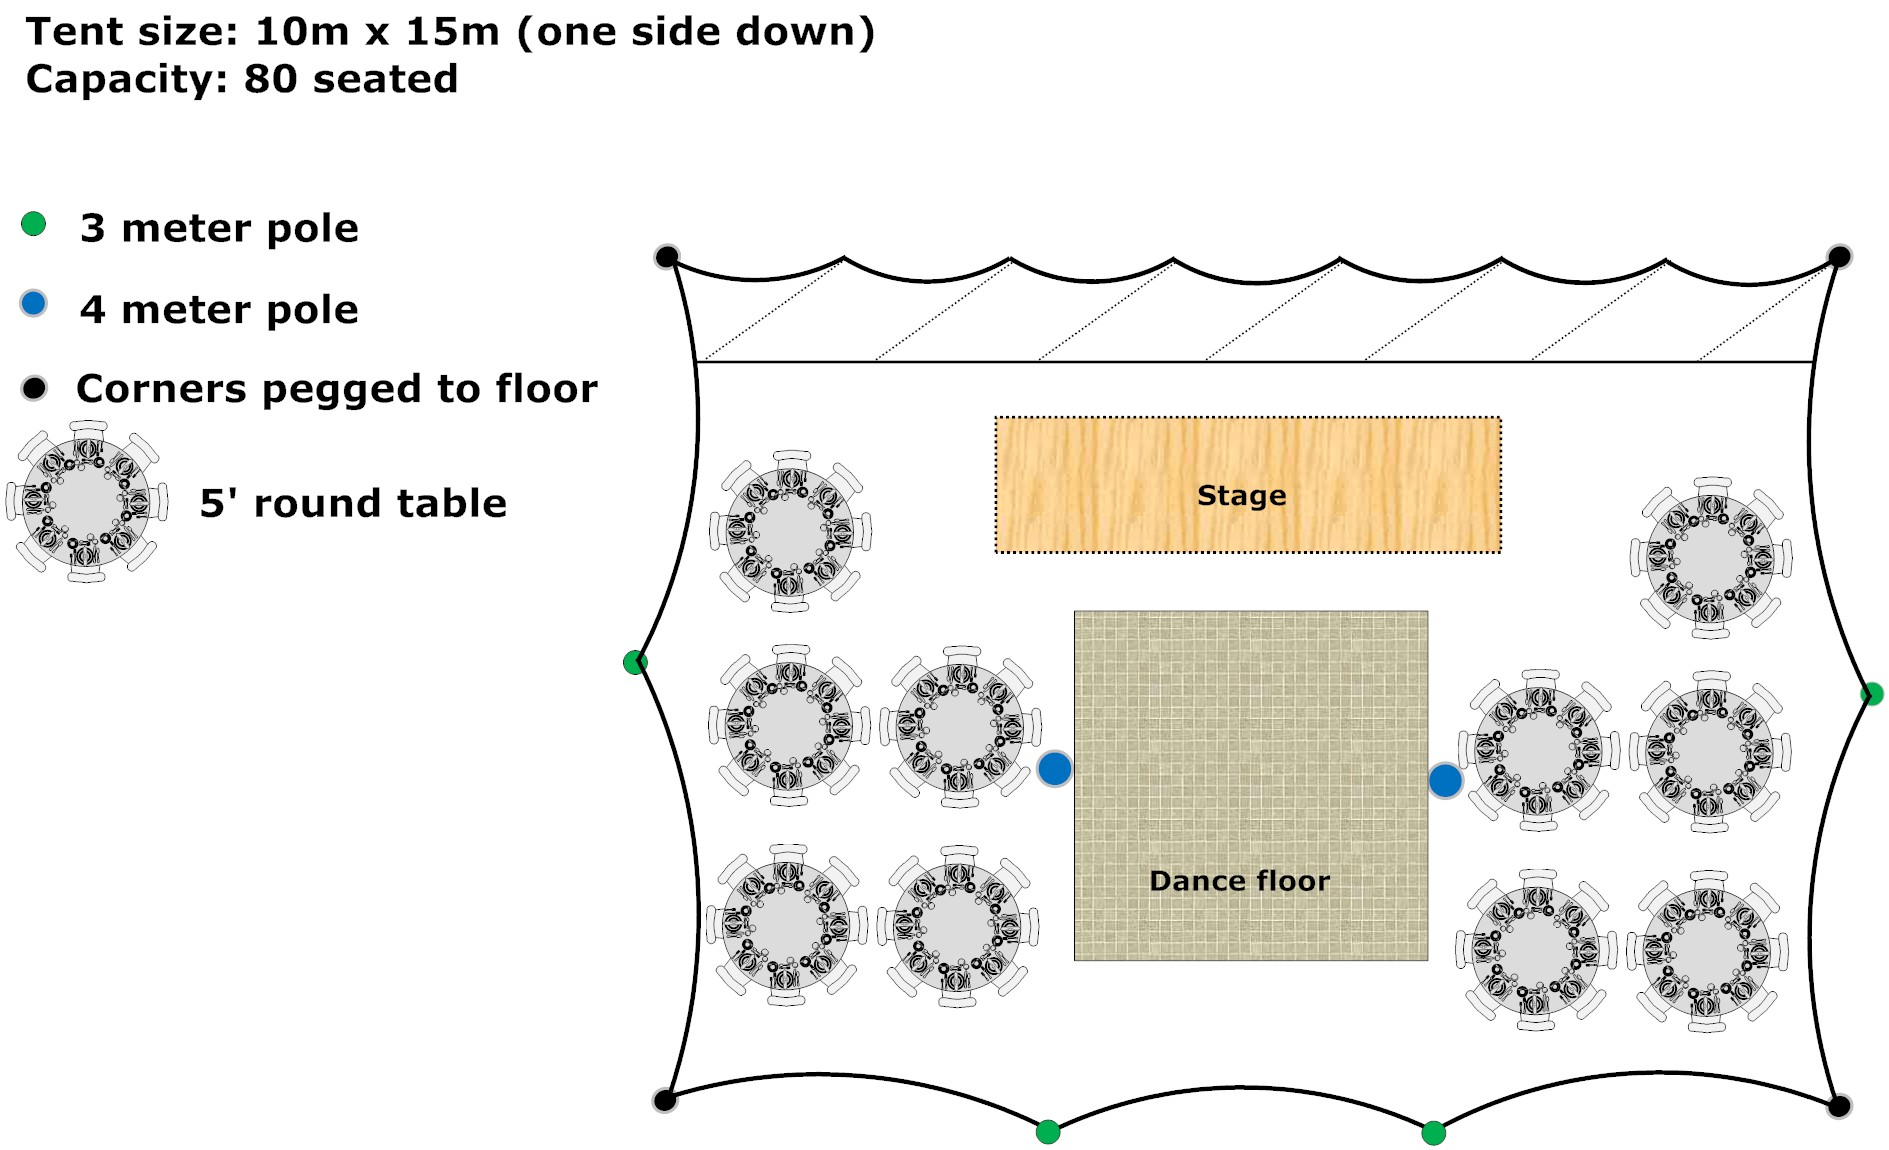 Floor plans stretchevent for 100s on the table 20s on the floor